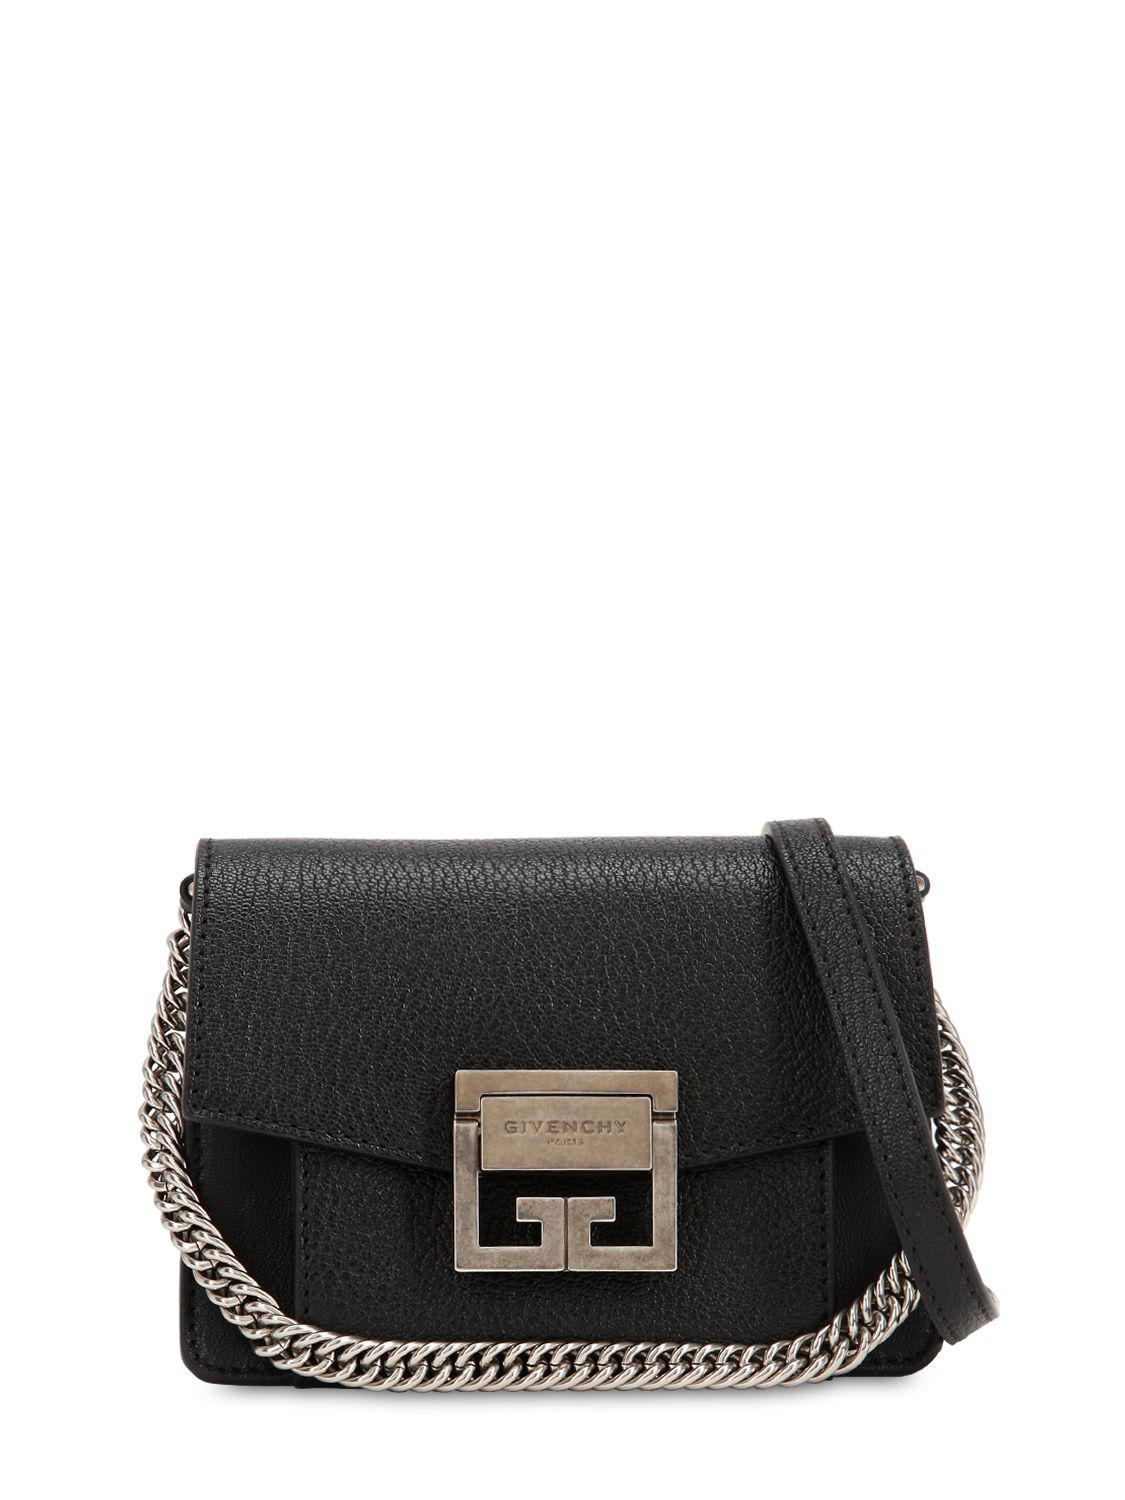 09cfa4359b7 Givenchy Mini Gv3 Grained Leather Shoulder Bag in Black - Lyst